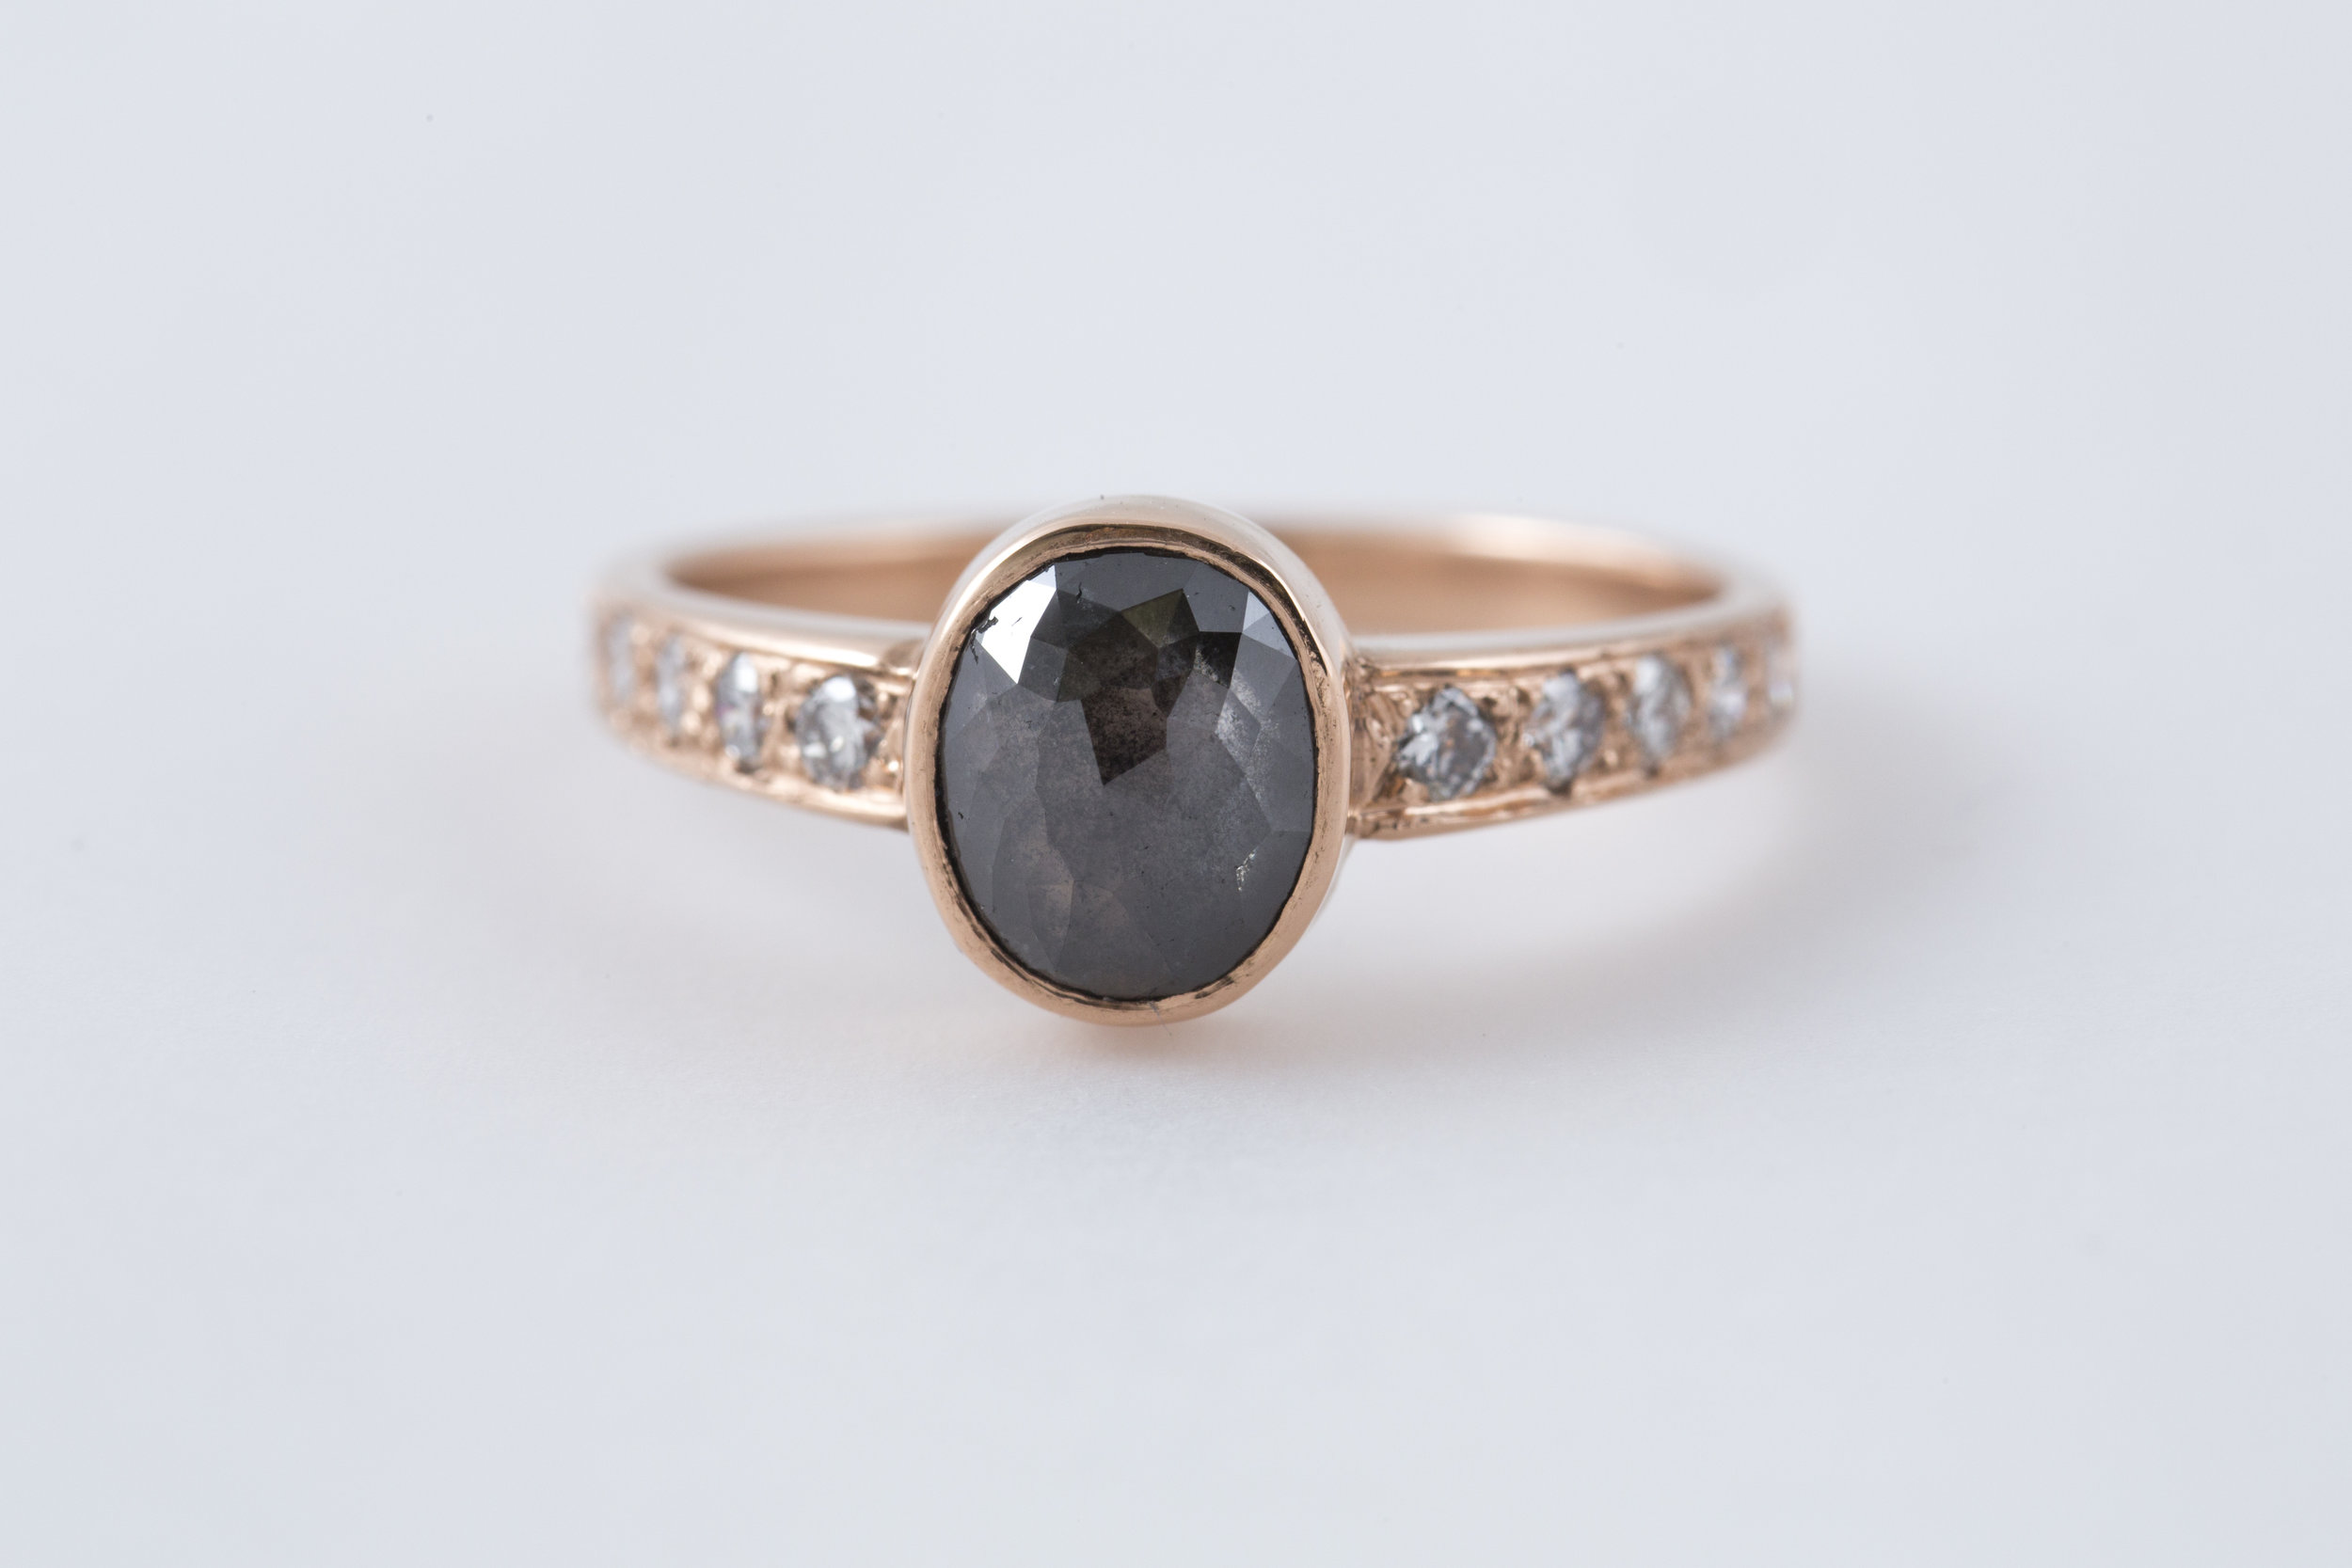 Andrea's Ring